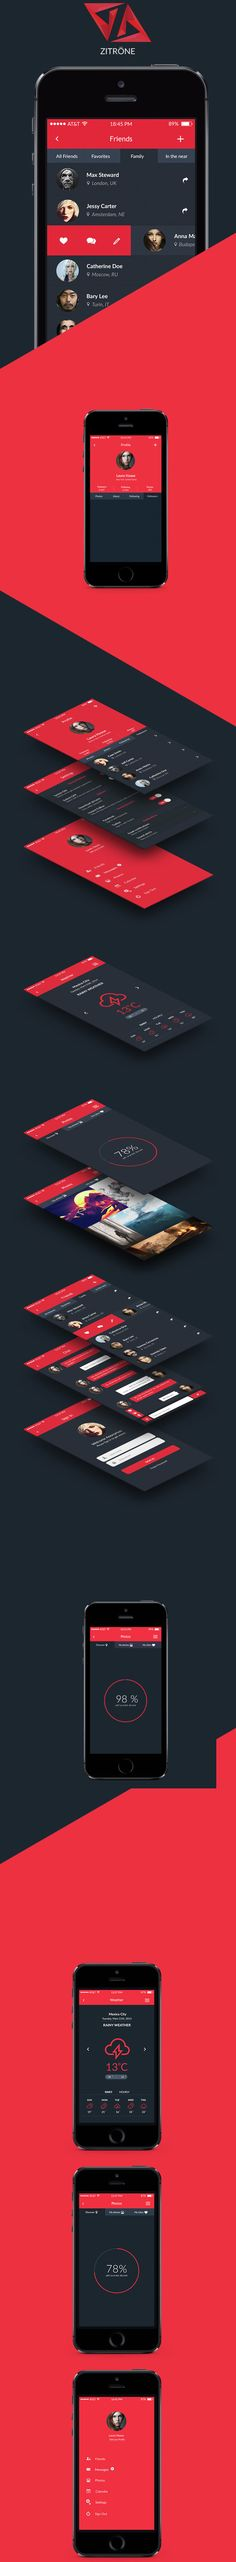 Not quite a wireframe, but it's an interesting way to display the different levels in an interface.